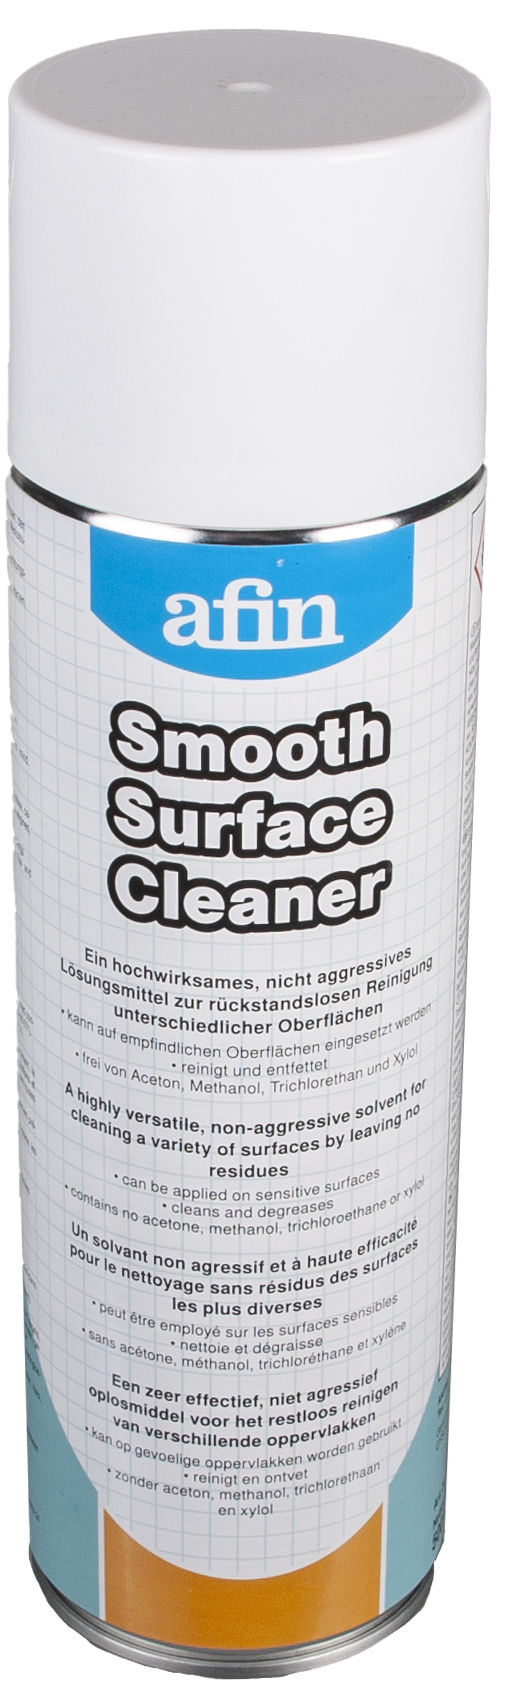 Afin Smooth Surface Cleaner 500 ml